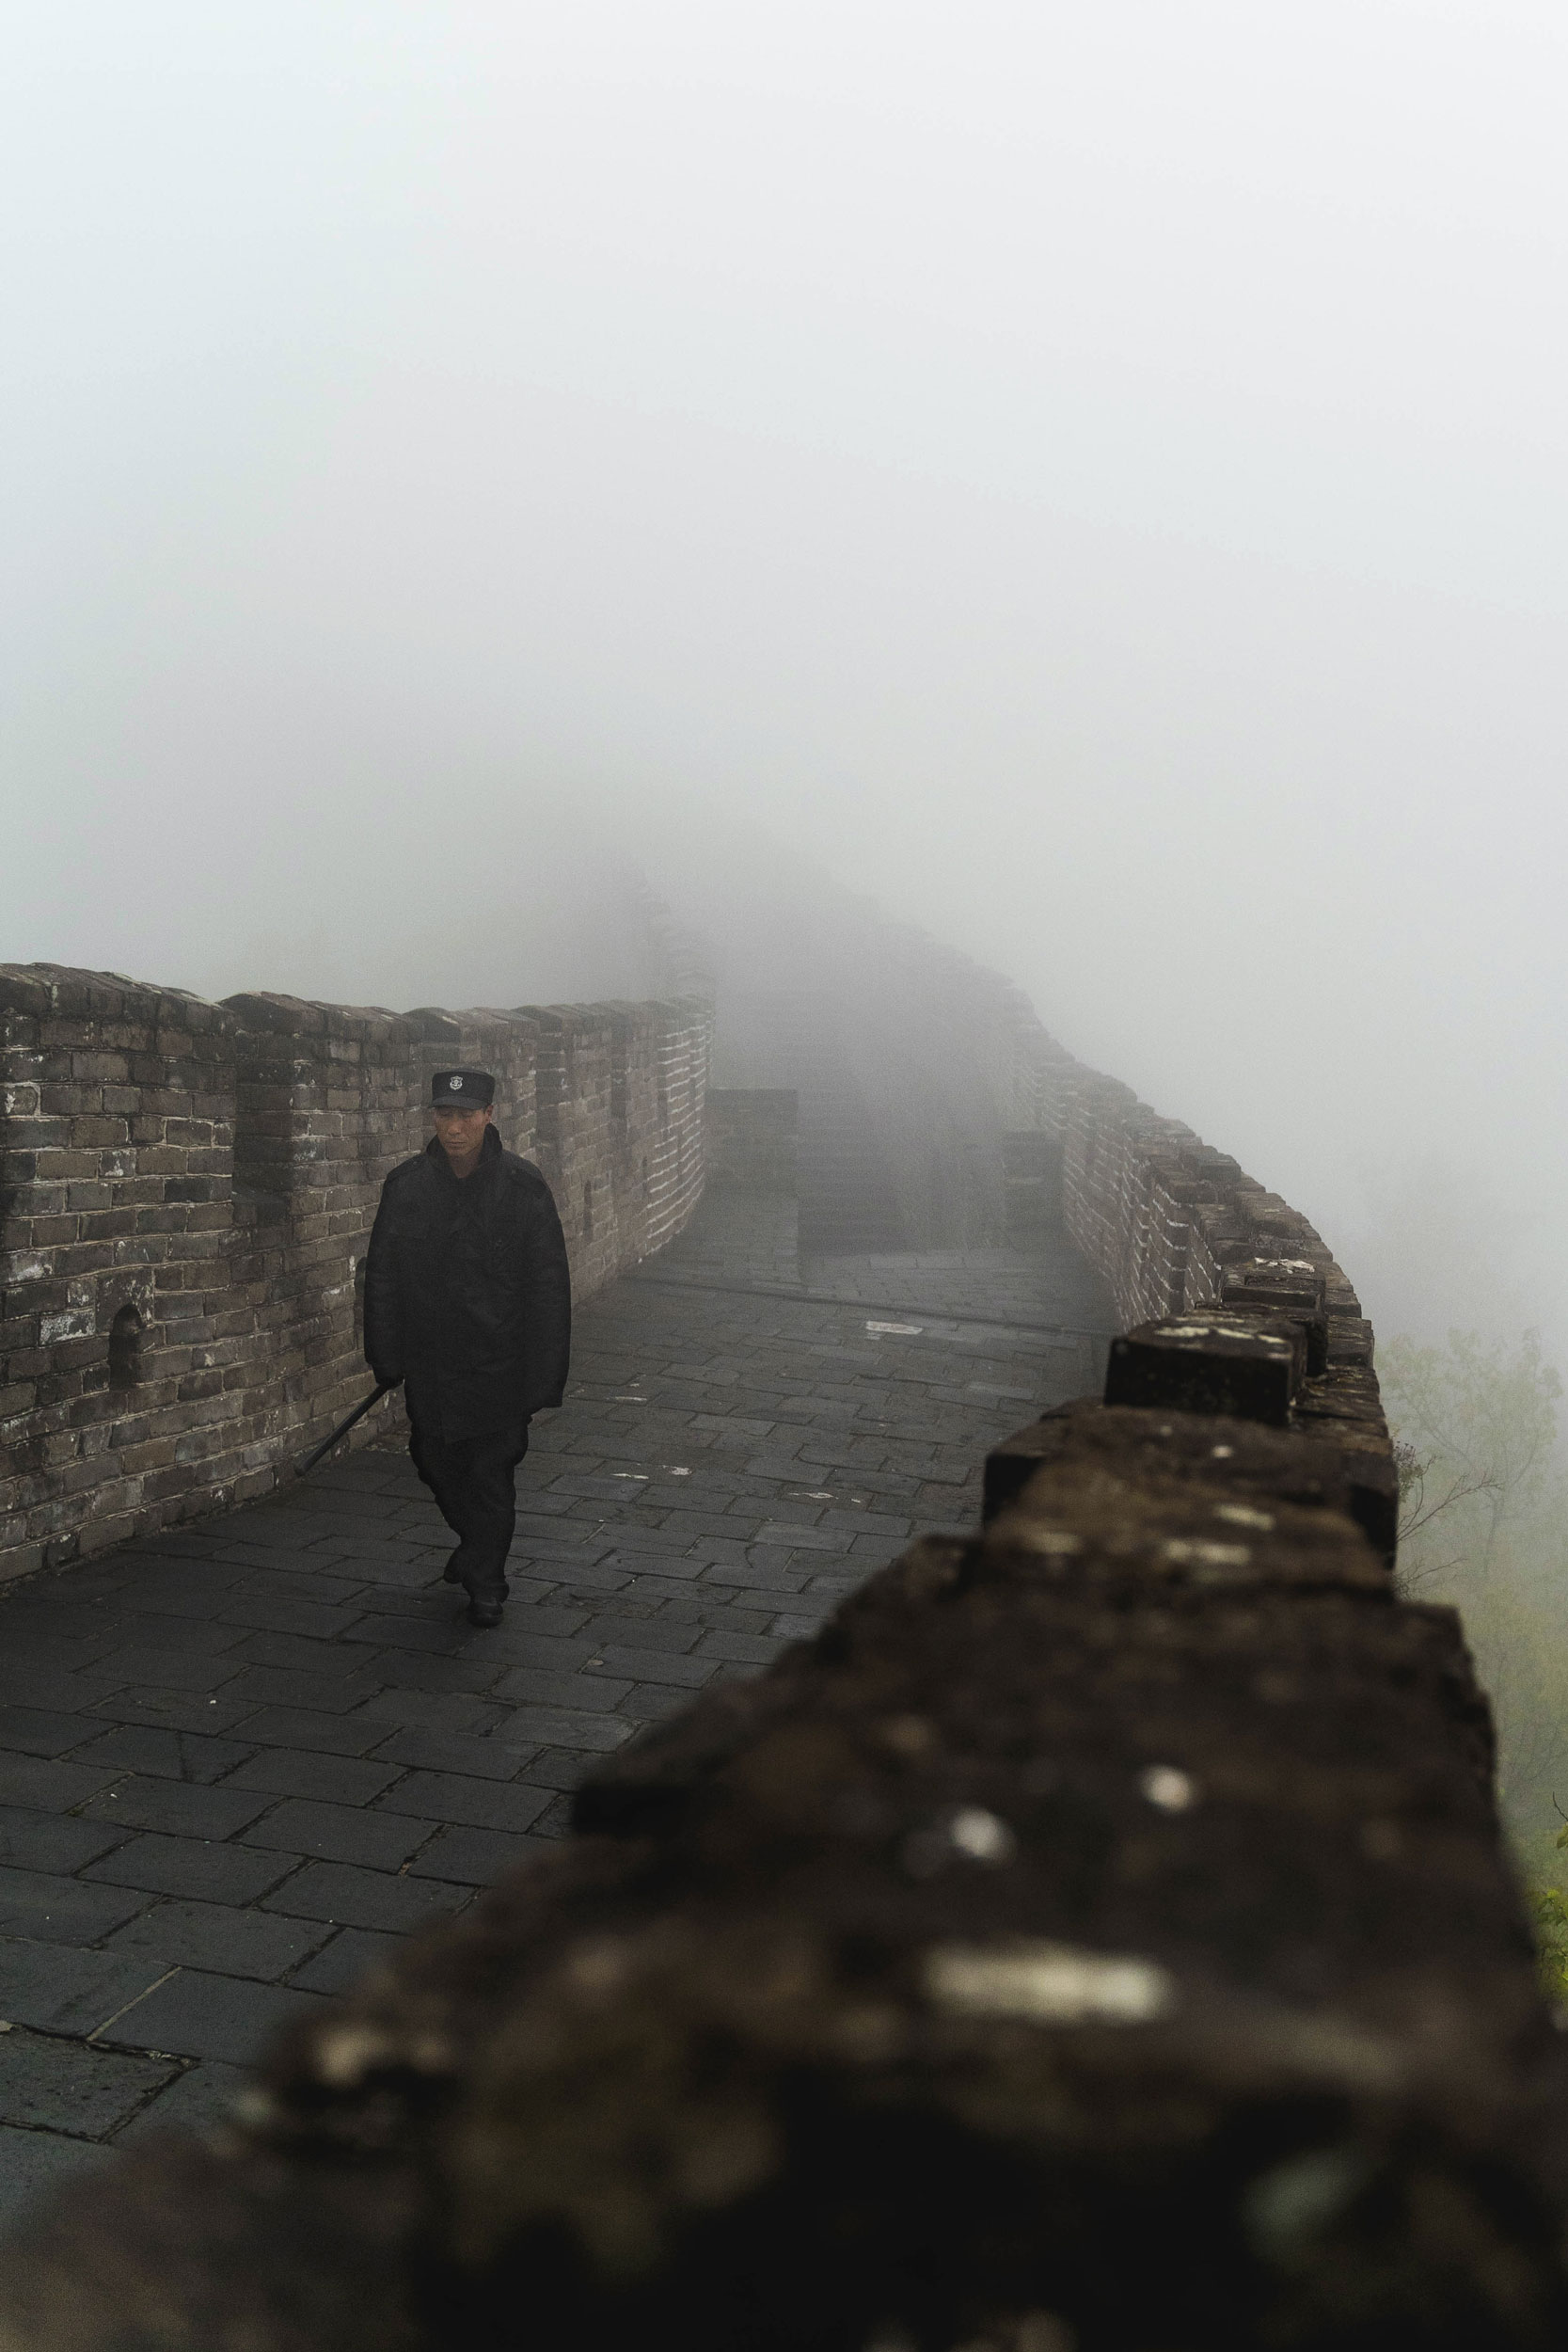 A man walks the Great Wall on a foggy, early morning. [  INSTAGRAM  ]